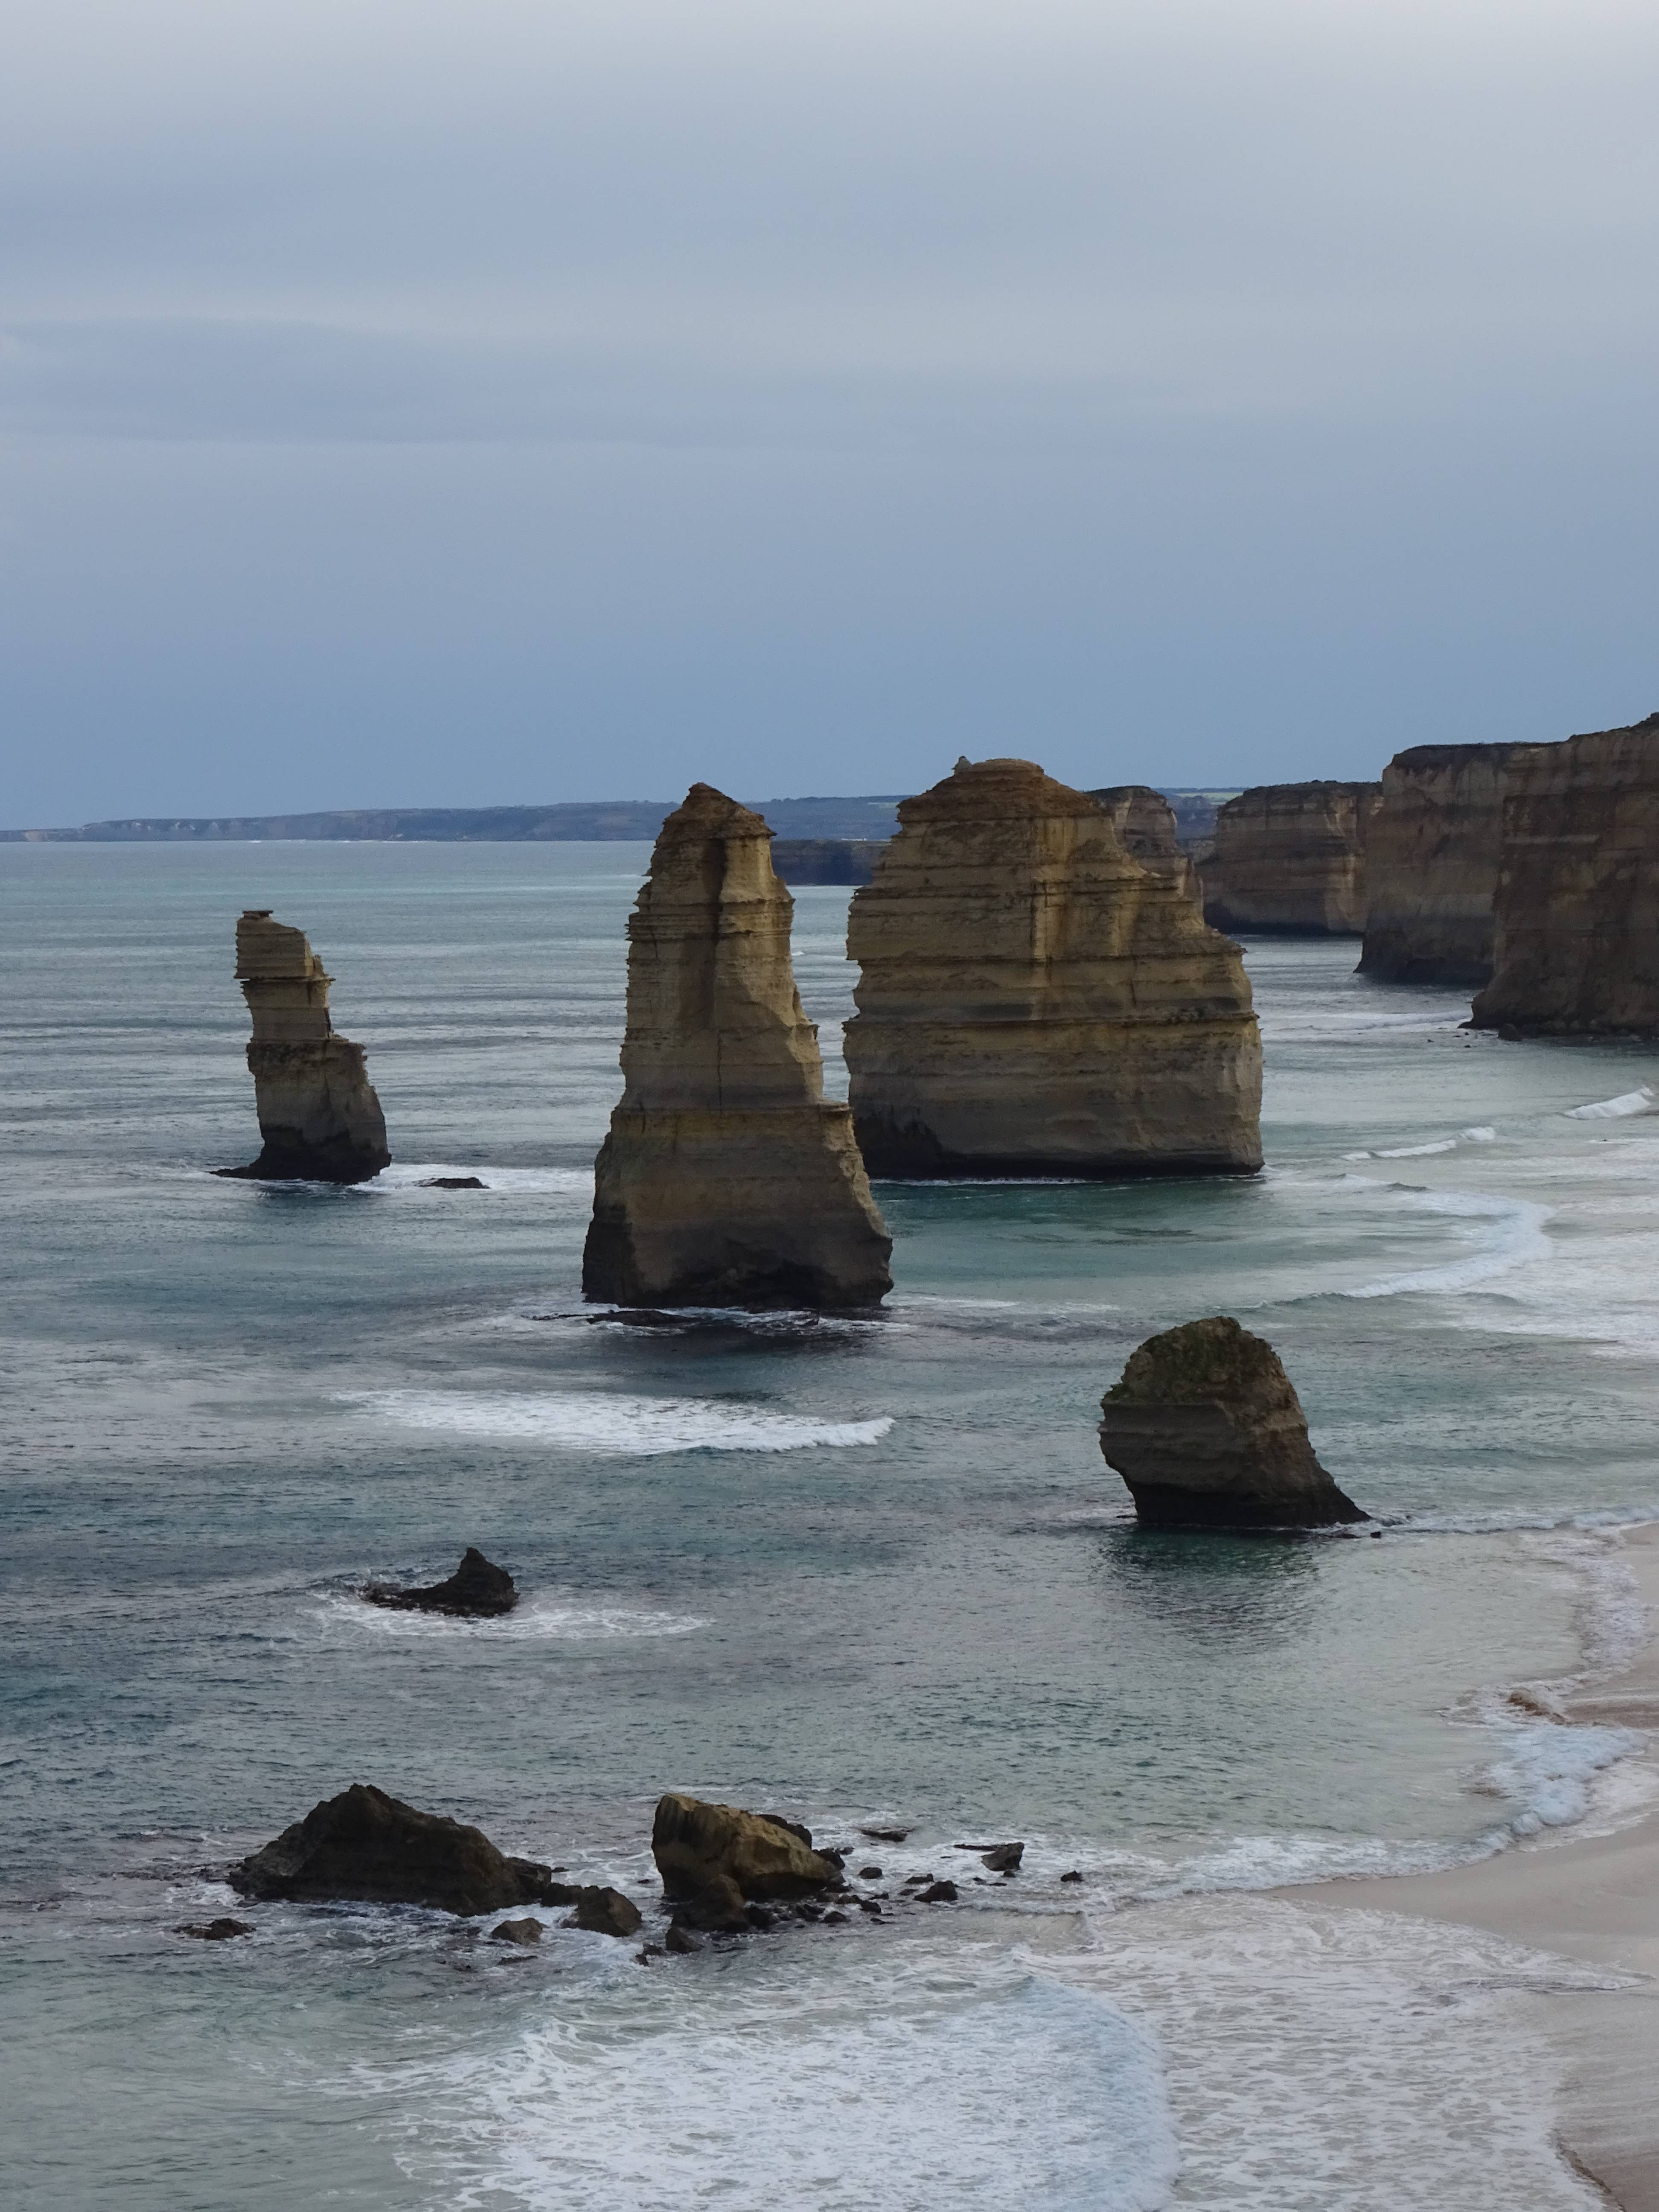 Photo 3: The Great Ocean Road!